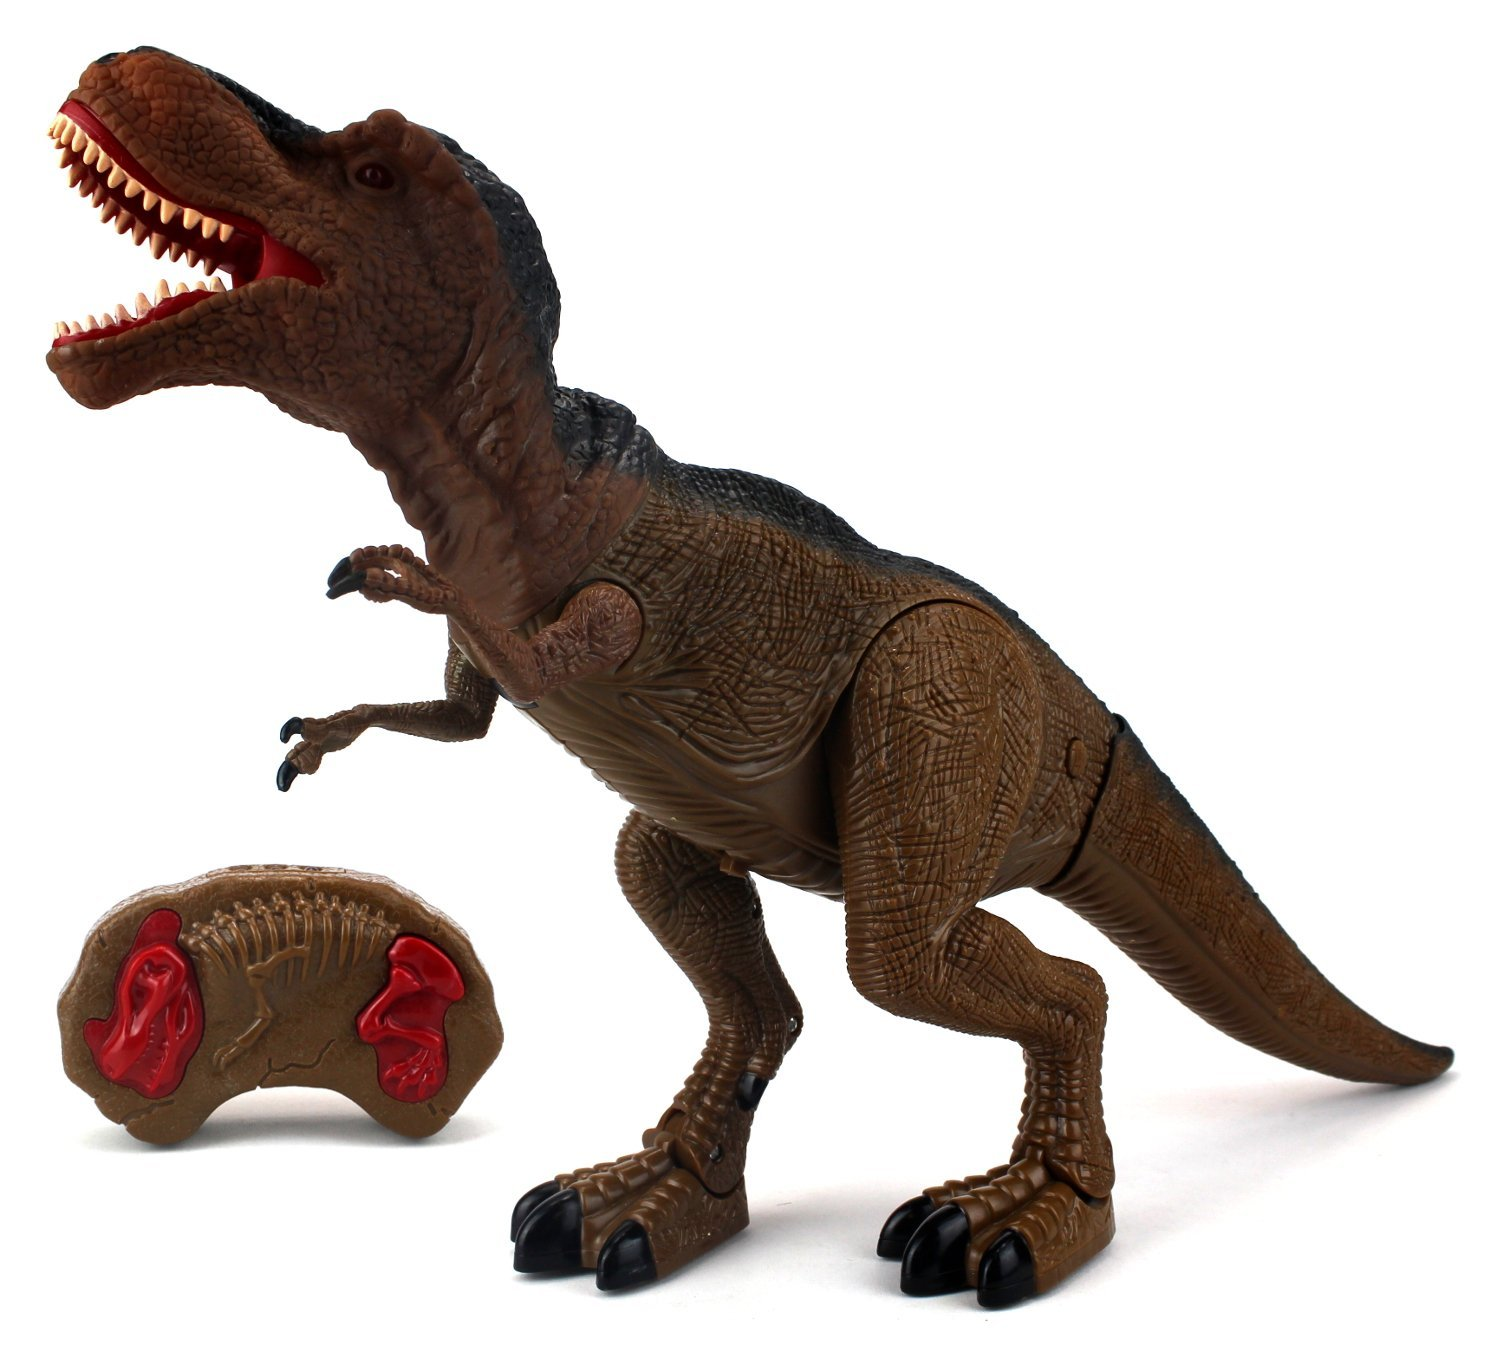 Dinosaur Planet T-Rex Battery Operated Remote Control Walking Toy Dinosaur Figure w/ Shaking Head, Walking Movement, Light Up Eyes and Sounds